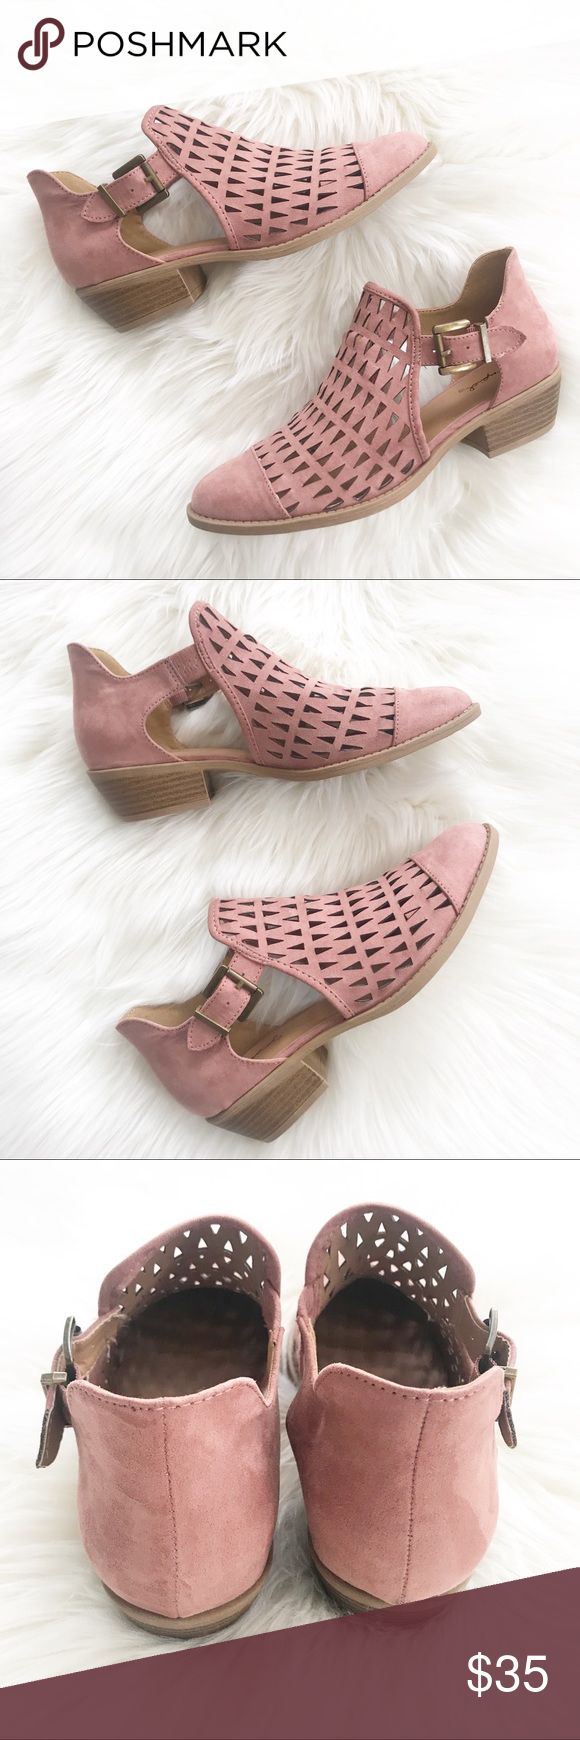 Chunky Heel Booties Size 7 Mauve Color Mauve Booties Size 7.  They run big.  They would fit a size 7..5 better.  Medium width.  Man made leather.  Chunky heel.  Only worn once inside the house. Qupid Shoes Ankle Boots & Booties